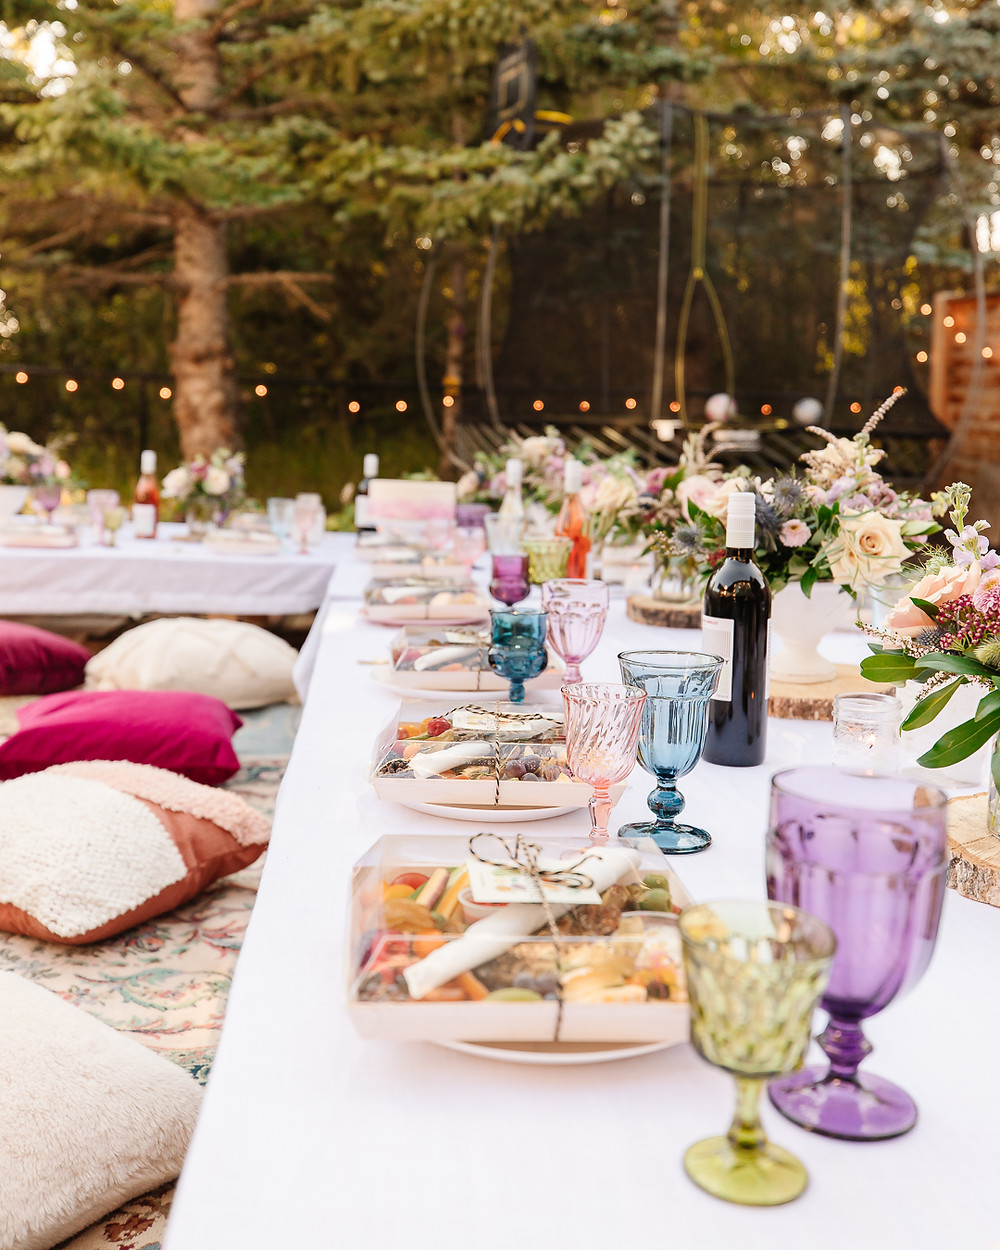 An evening backyard boho garden party with gorgeous flowers, vintage rugs, charcuterie wine, twinkle lights, coloured glasses, velvet throw pillows, boho decor and all your best girlfriends.